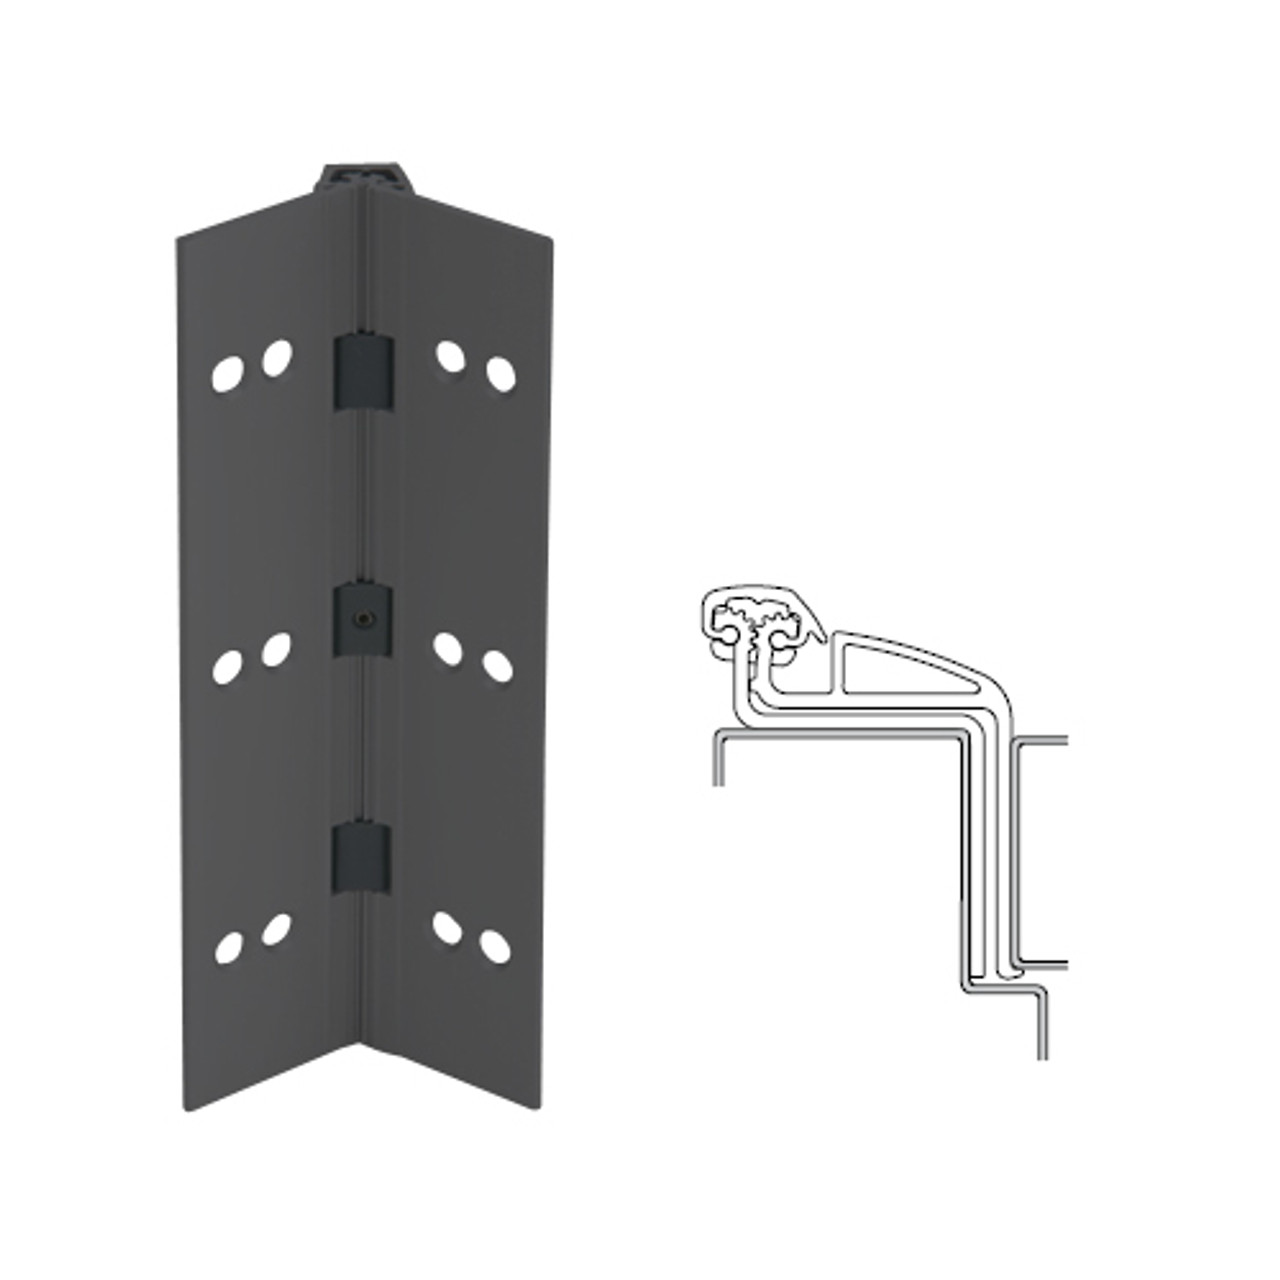 041XY-315AN-120-TF IVES Full Mortise Continuous Geared Hinges with Thread Forming Screws in Anodized Black